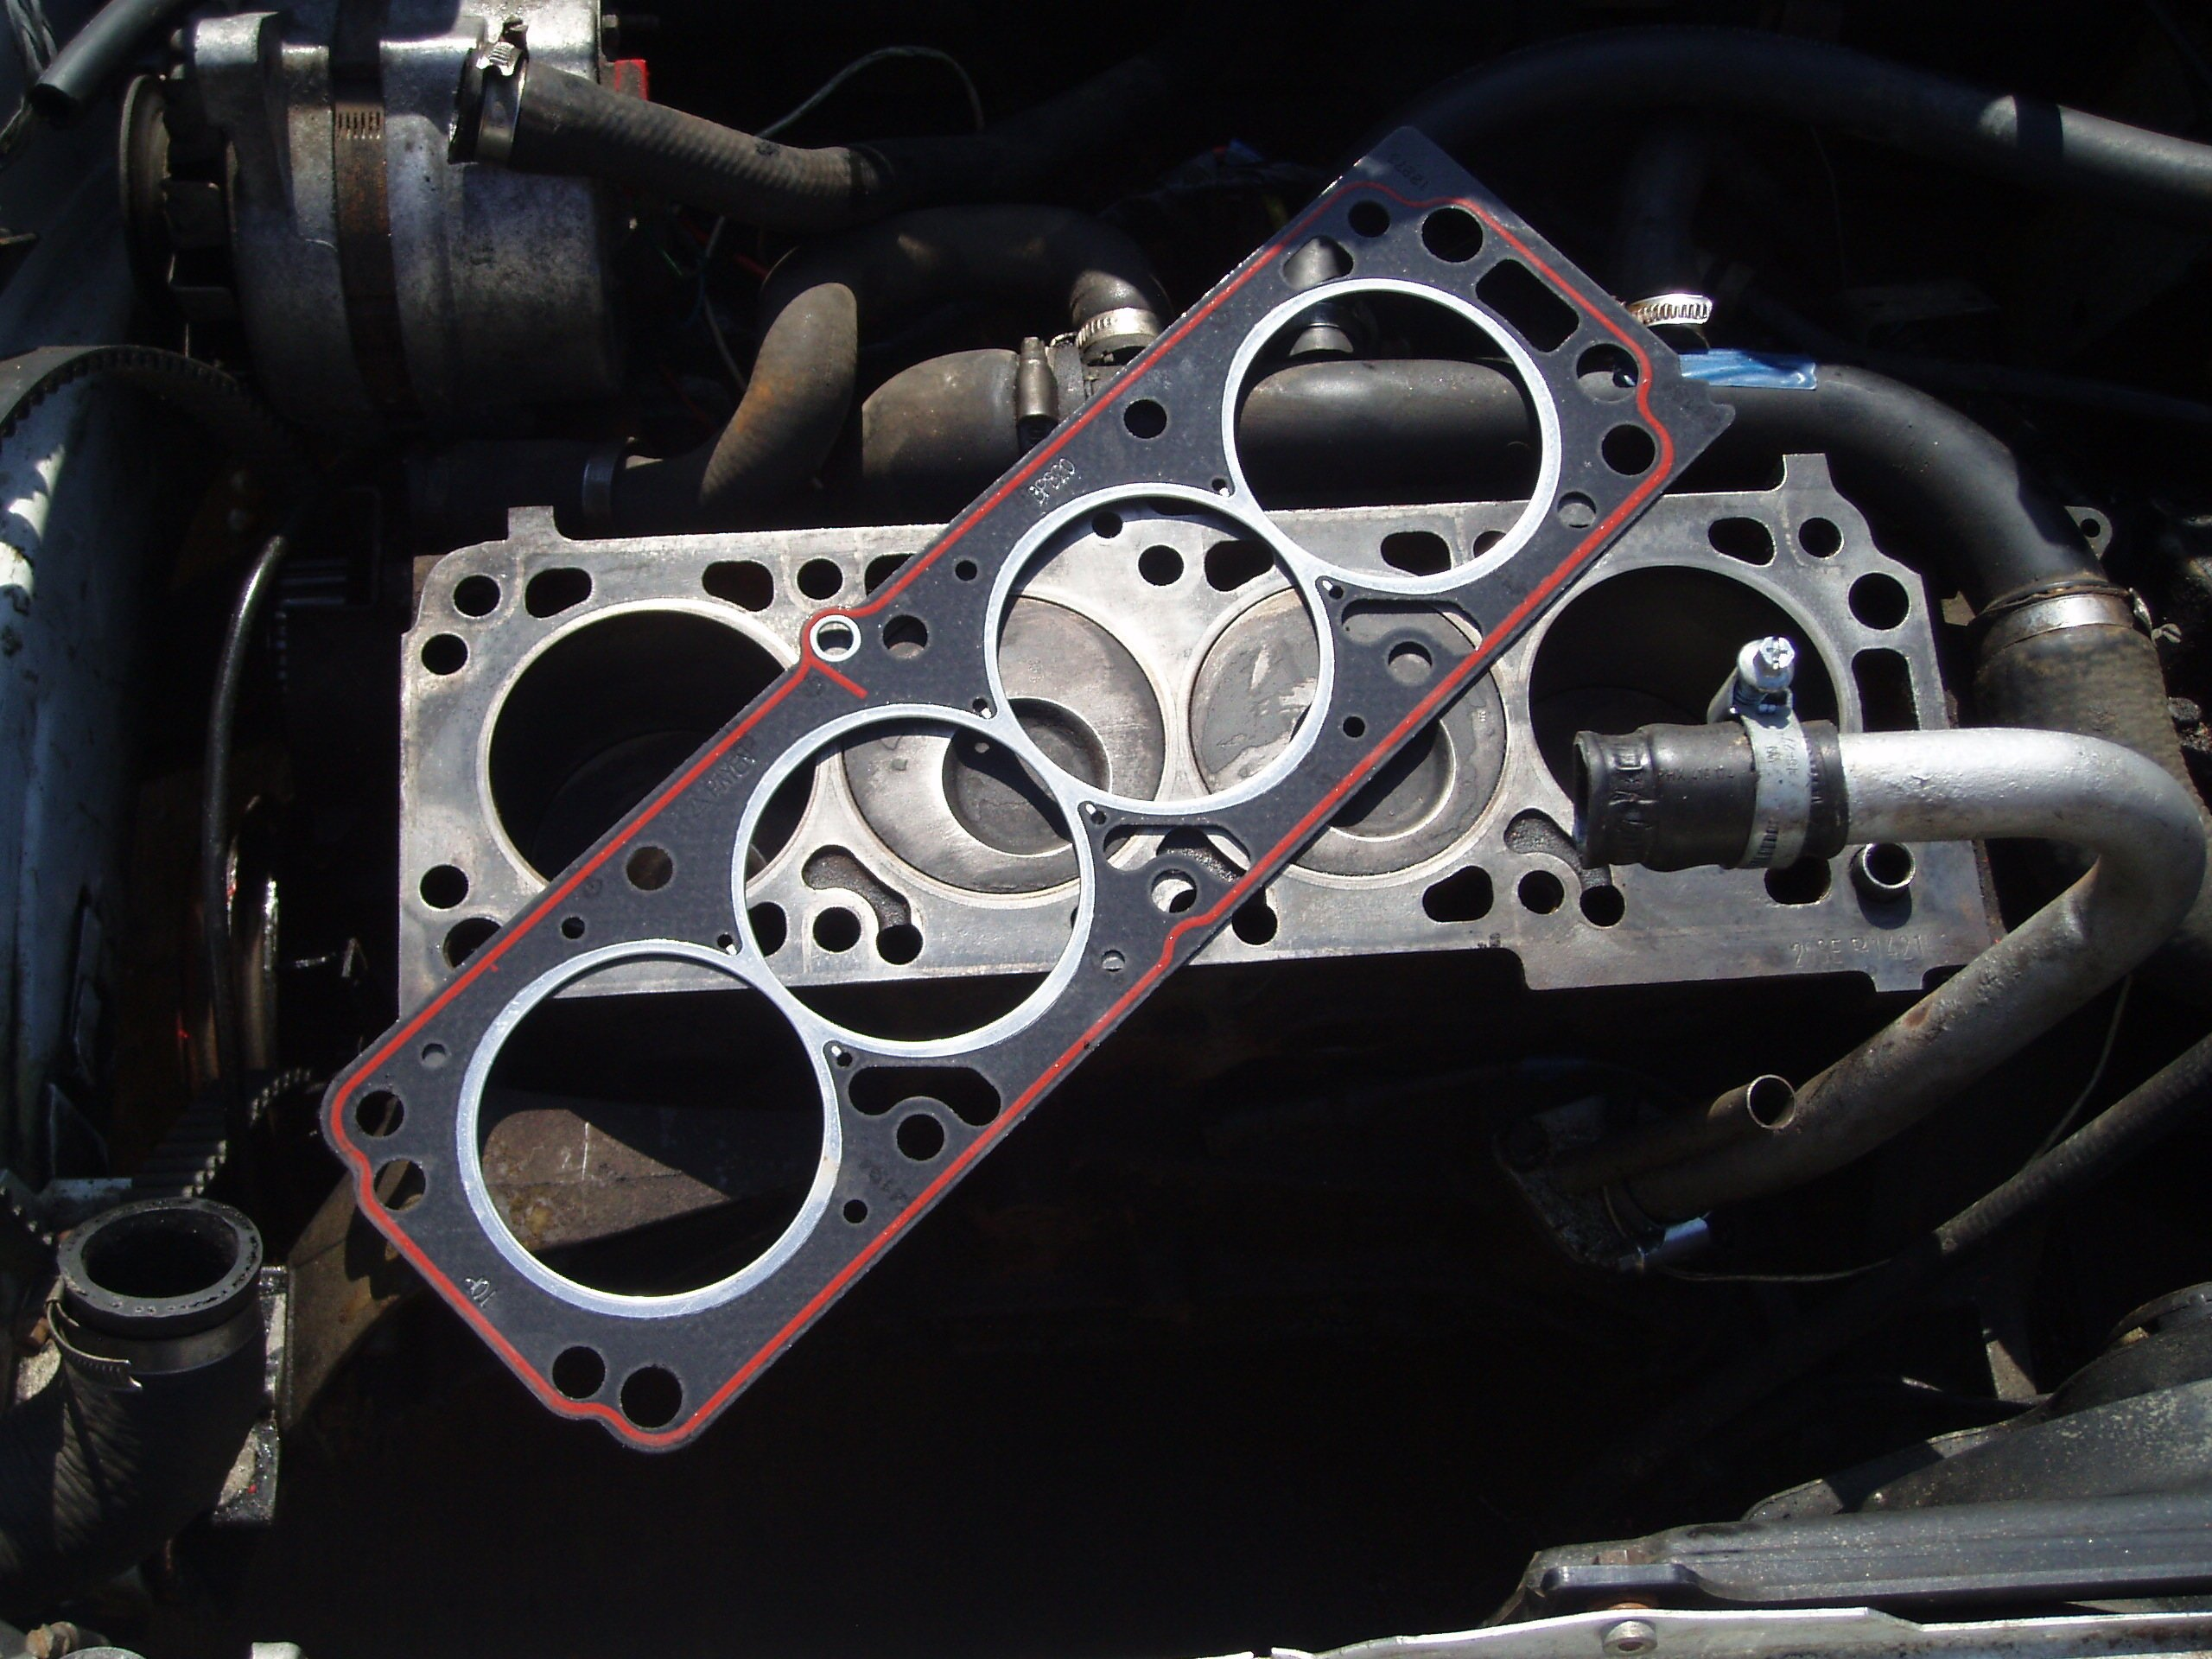 Blown Head Gasket Repair And Replacement Cost Information